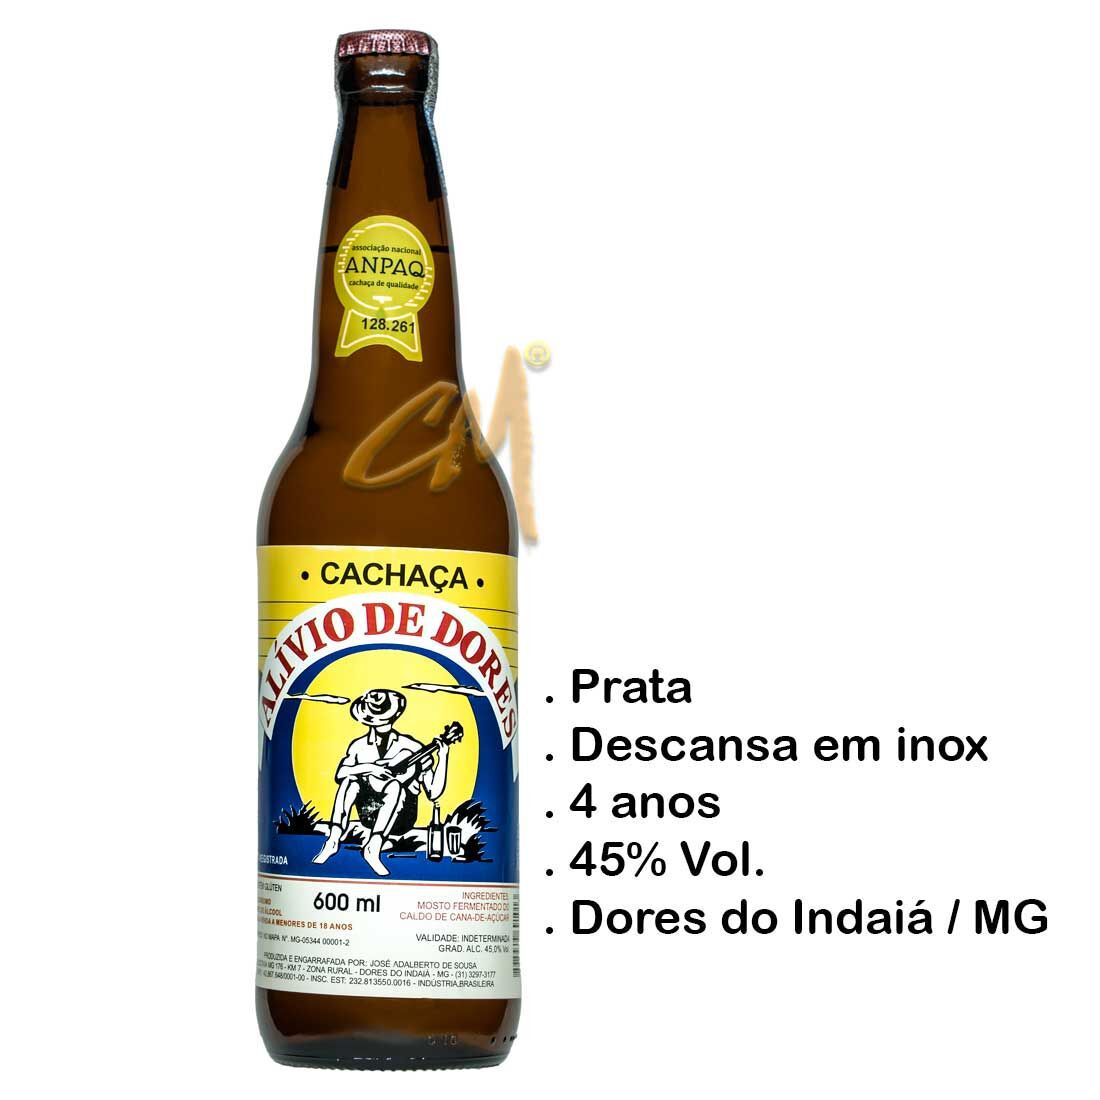 Cachaça Alívio de Dores 600 ml   (Dores do Indaiá - MG)